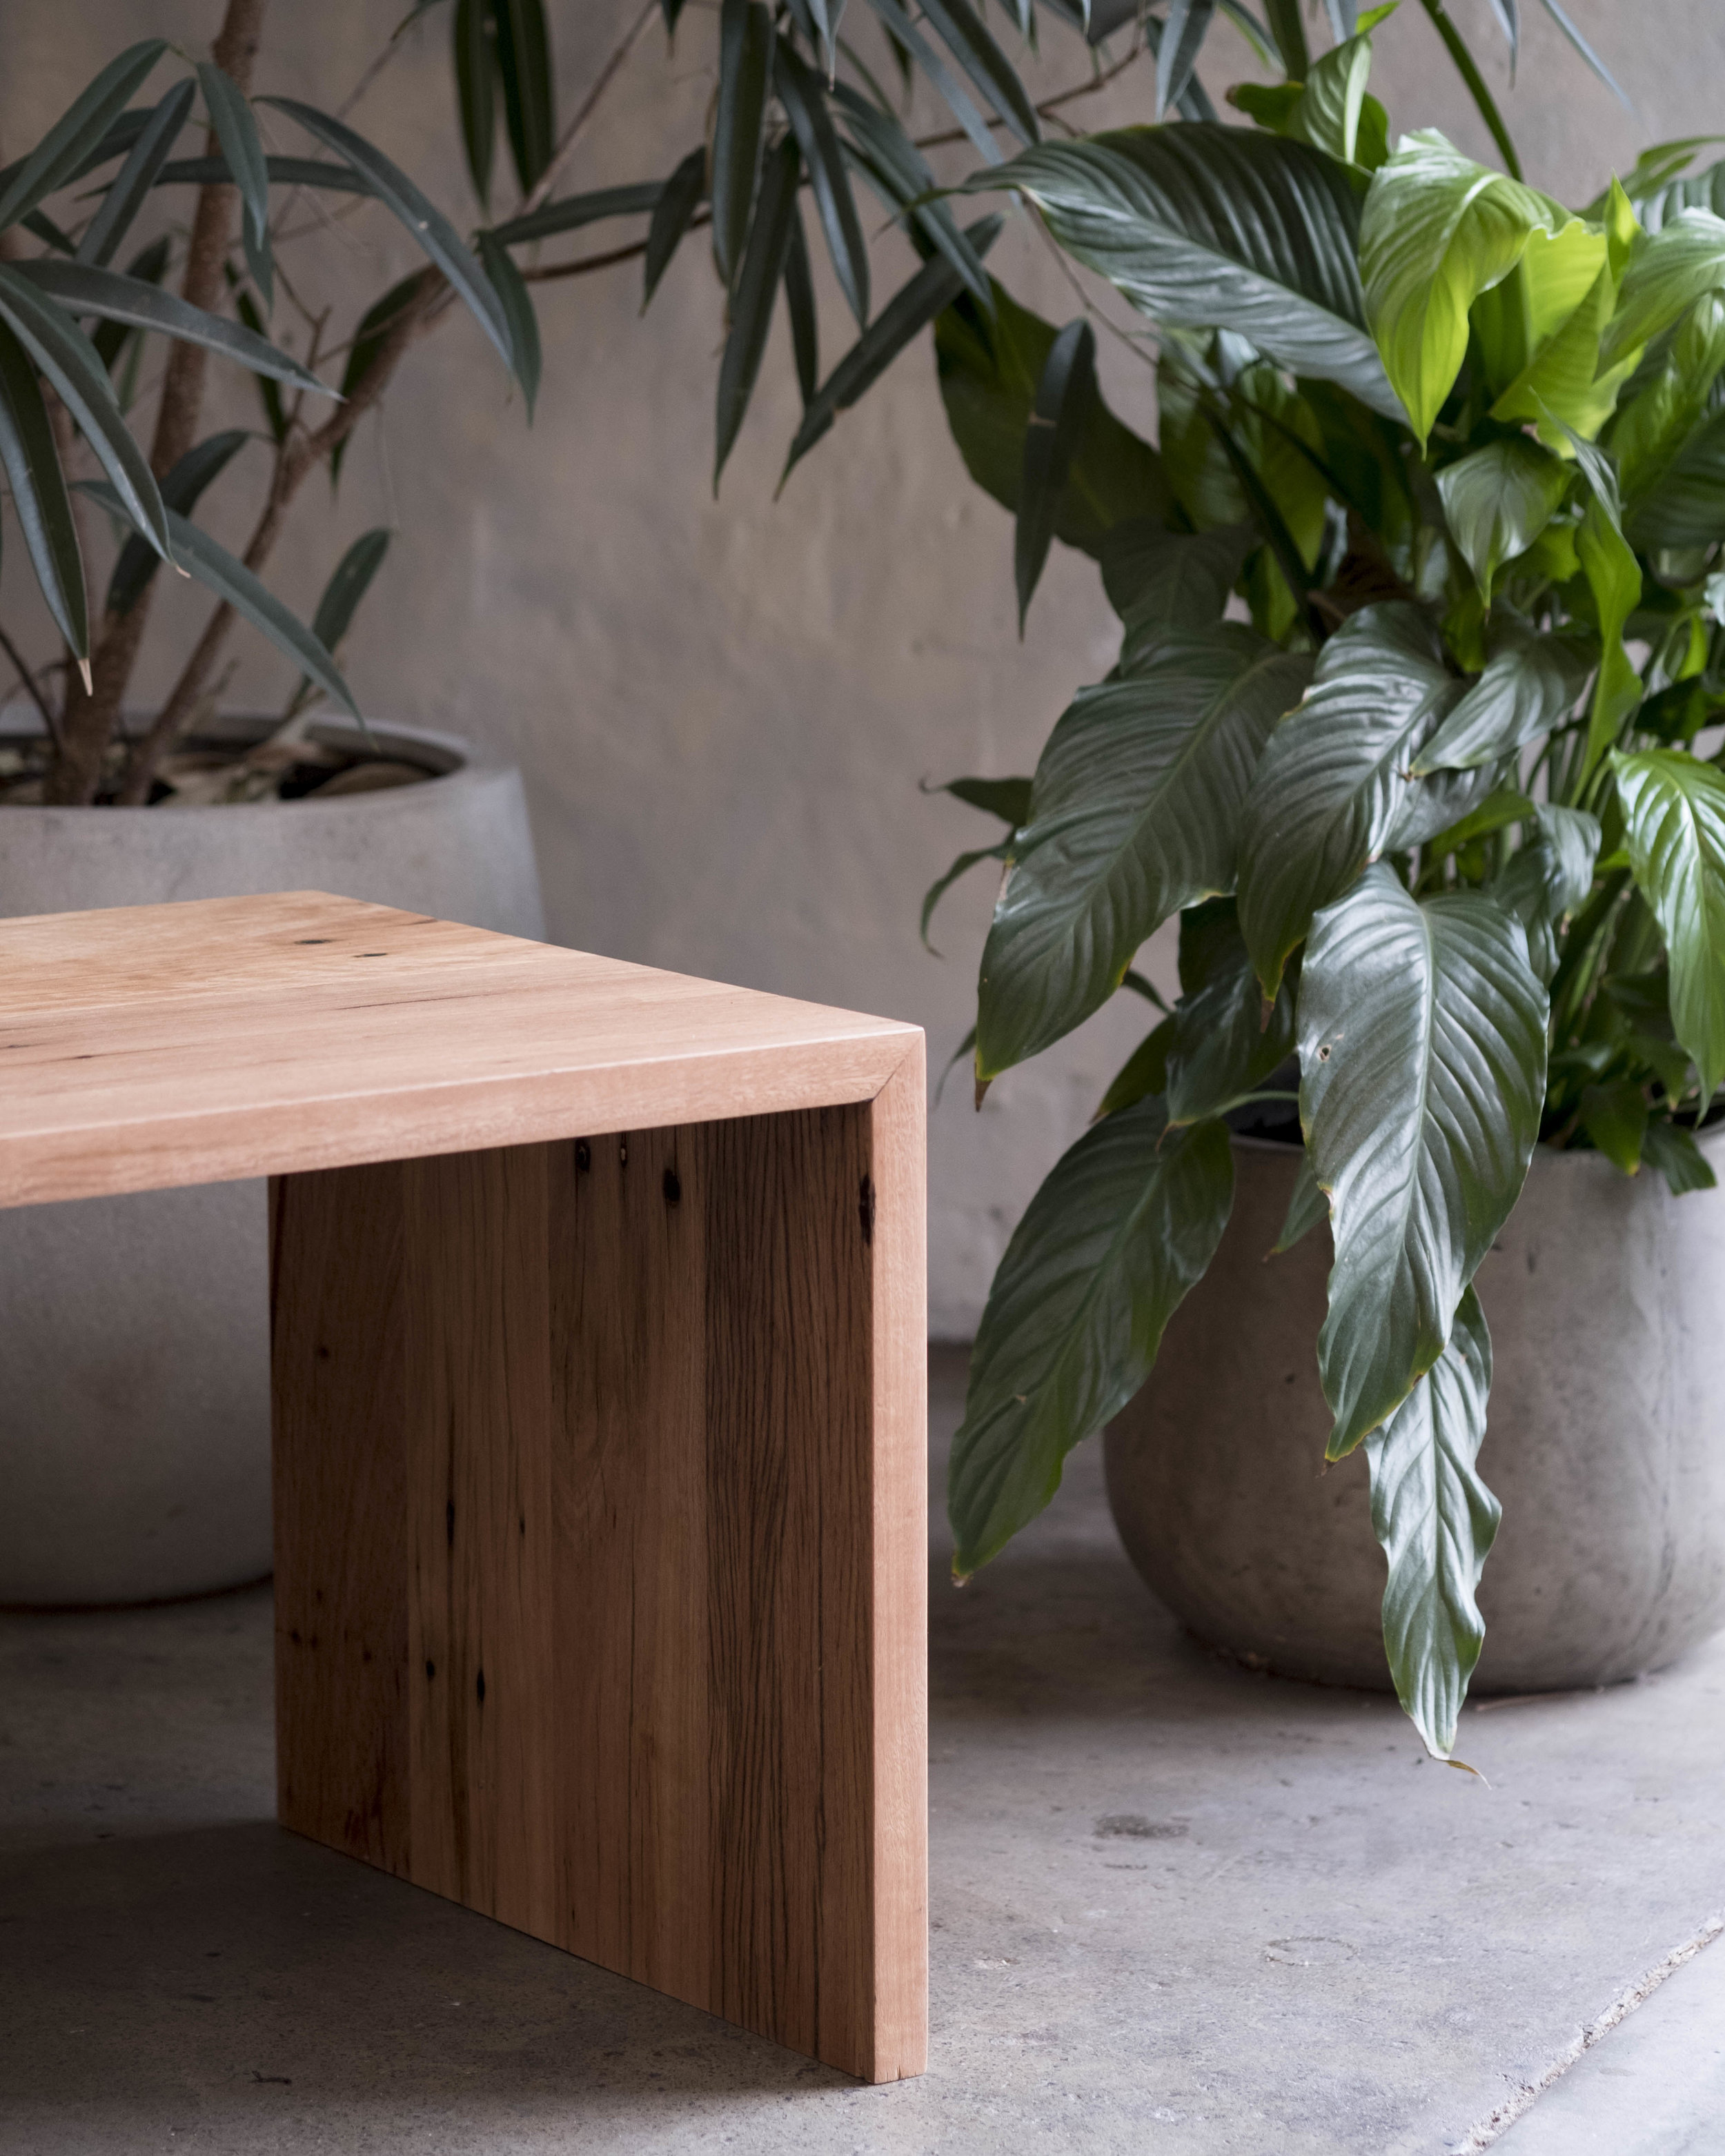 Coffee table and Plants.jpg